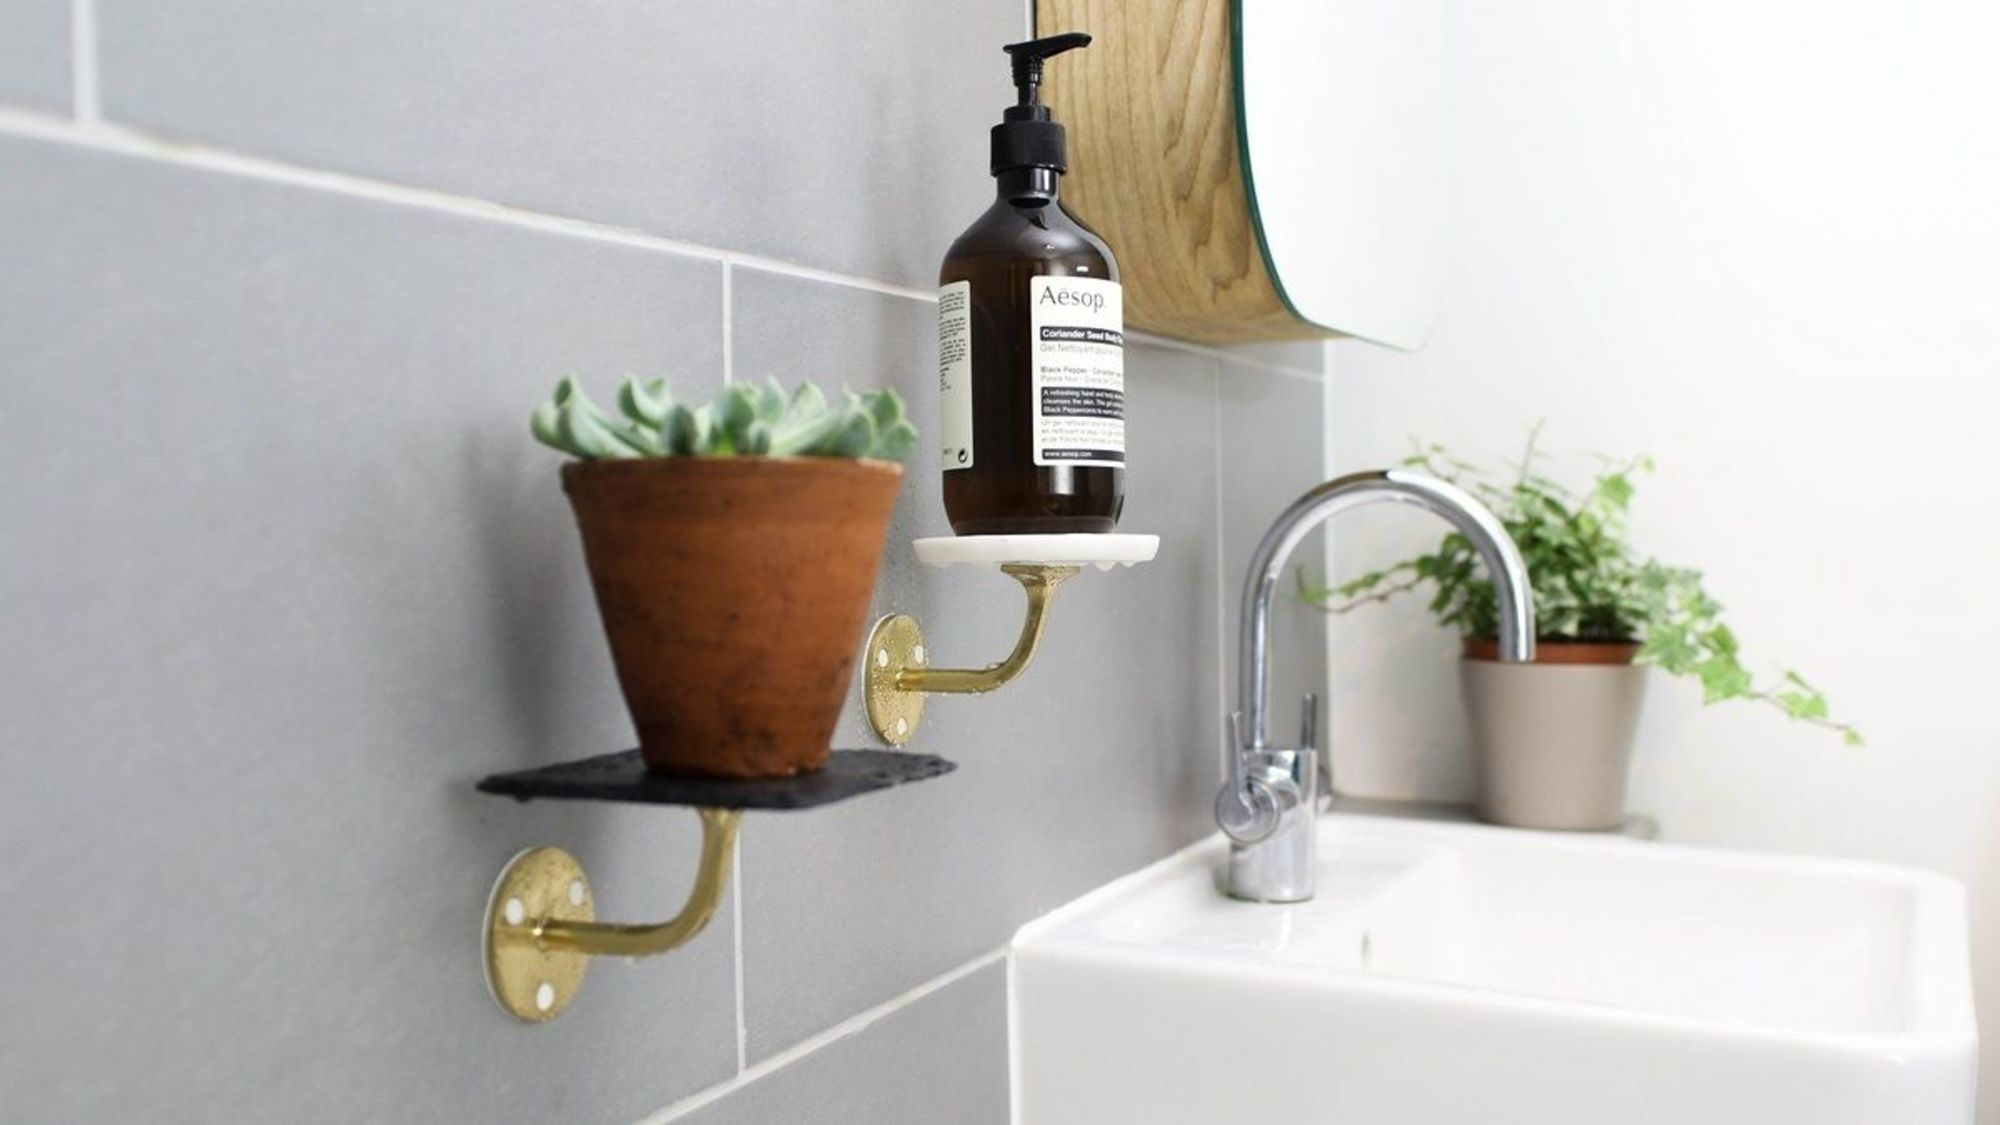 How to create bathroom shelves without drilling sugru sugru is ideal for this project because it bonds well with metals ceramics and wood weve used a metal handrail with marble and slate coasters and even a dailygadgetfo Gallery